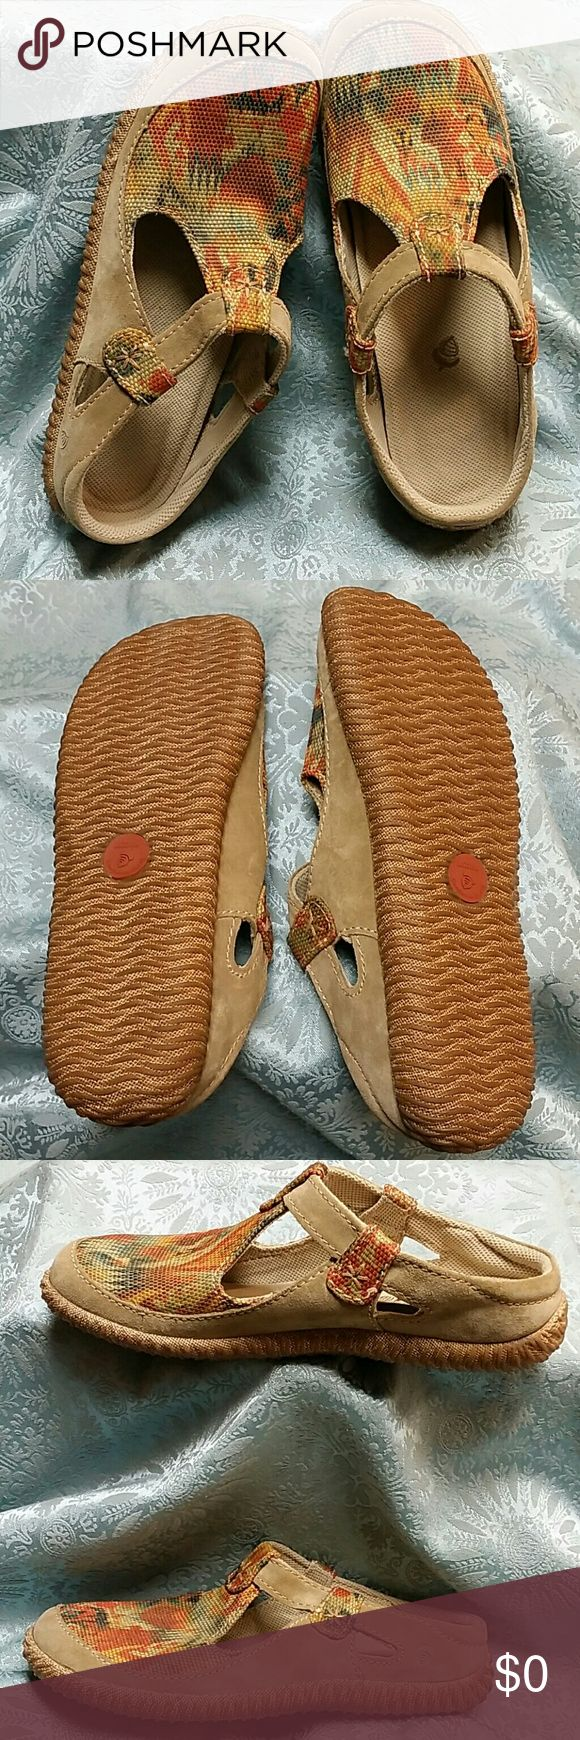 Acorn slip on shoes W11 Cute casual canvas slip on mules with tan suede trim. Padded heel. T strap does not adjust. Fun kickin around shoe in desert southwest colors. Wider fit woman shoes. Excellent condition. No box. Acorn Shoes Sneakers